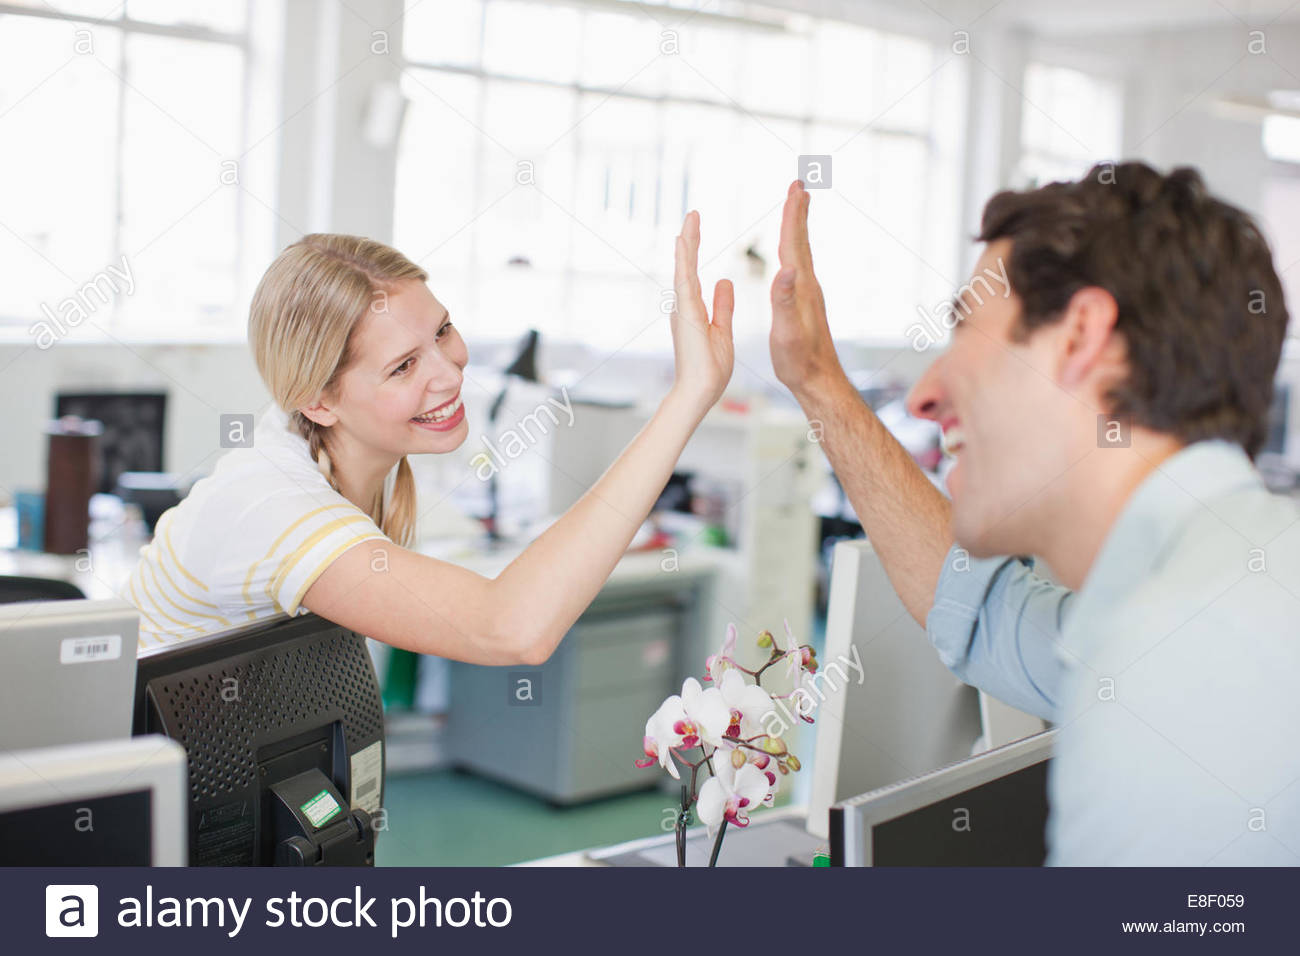 Business people giving high five in office - Stock Image